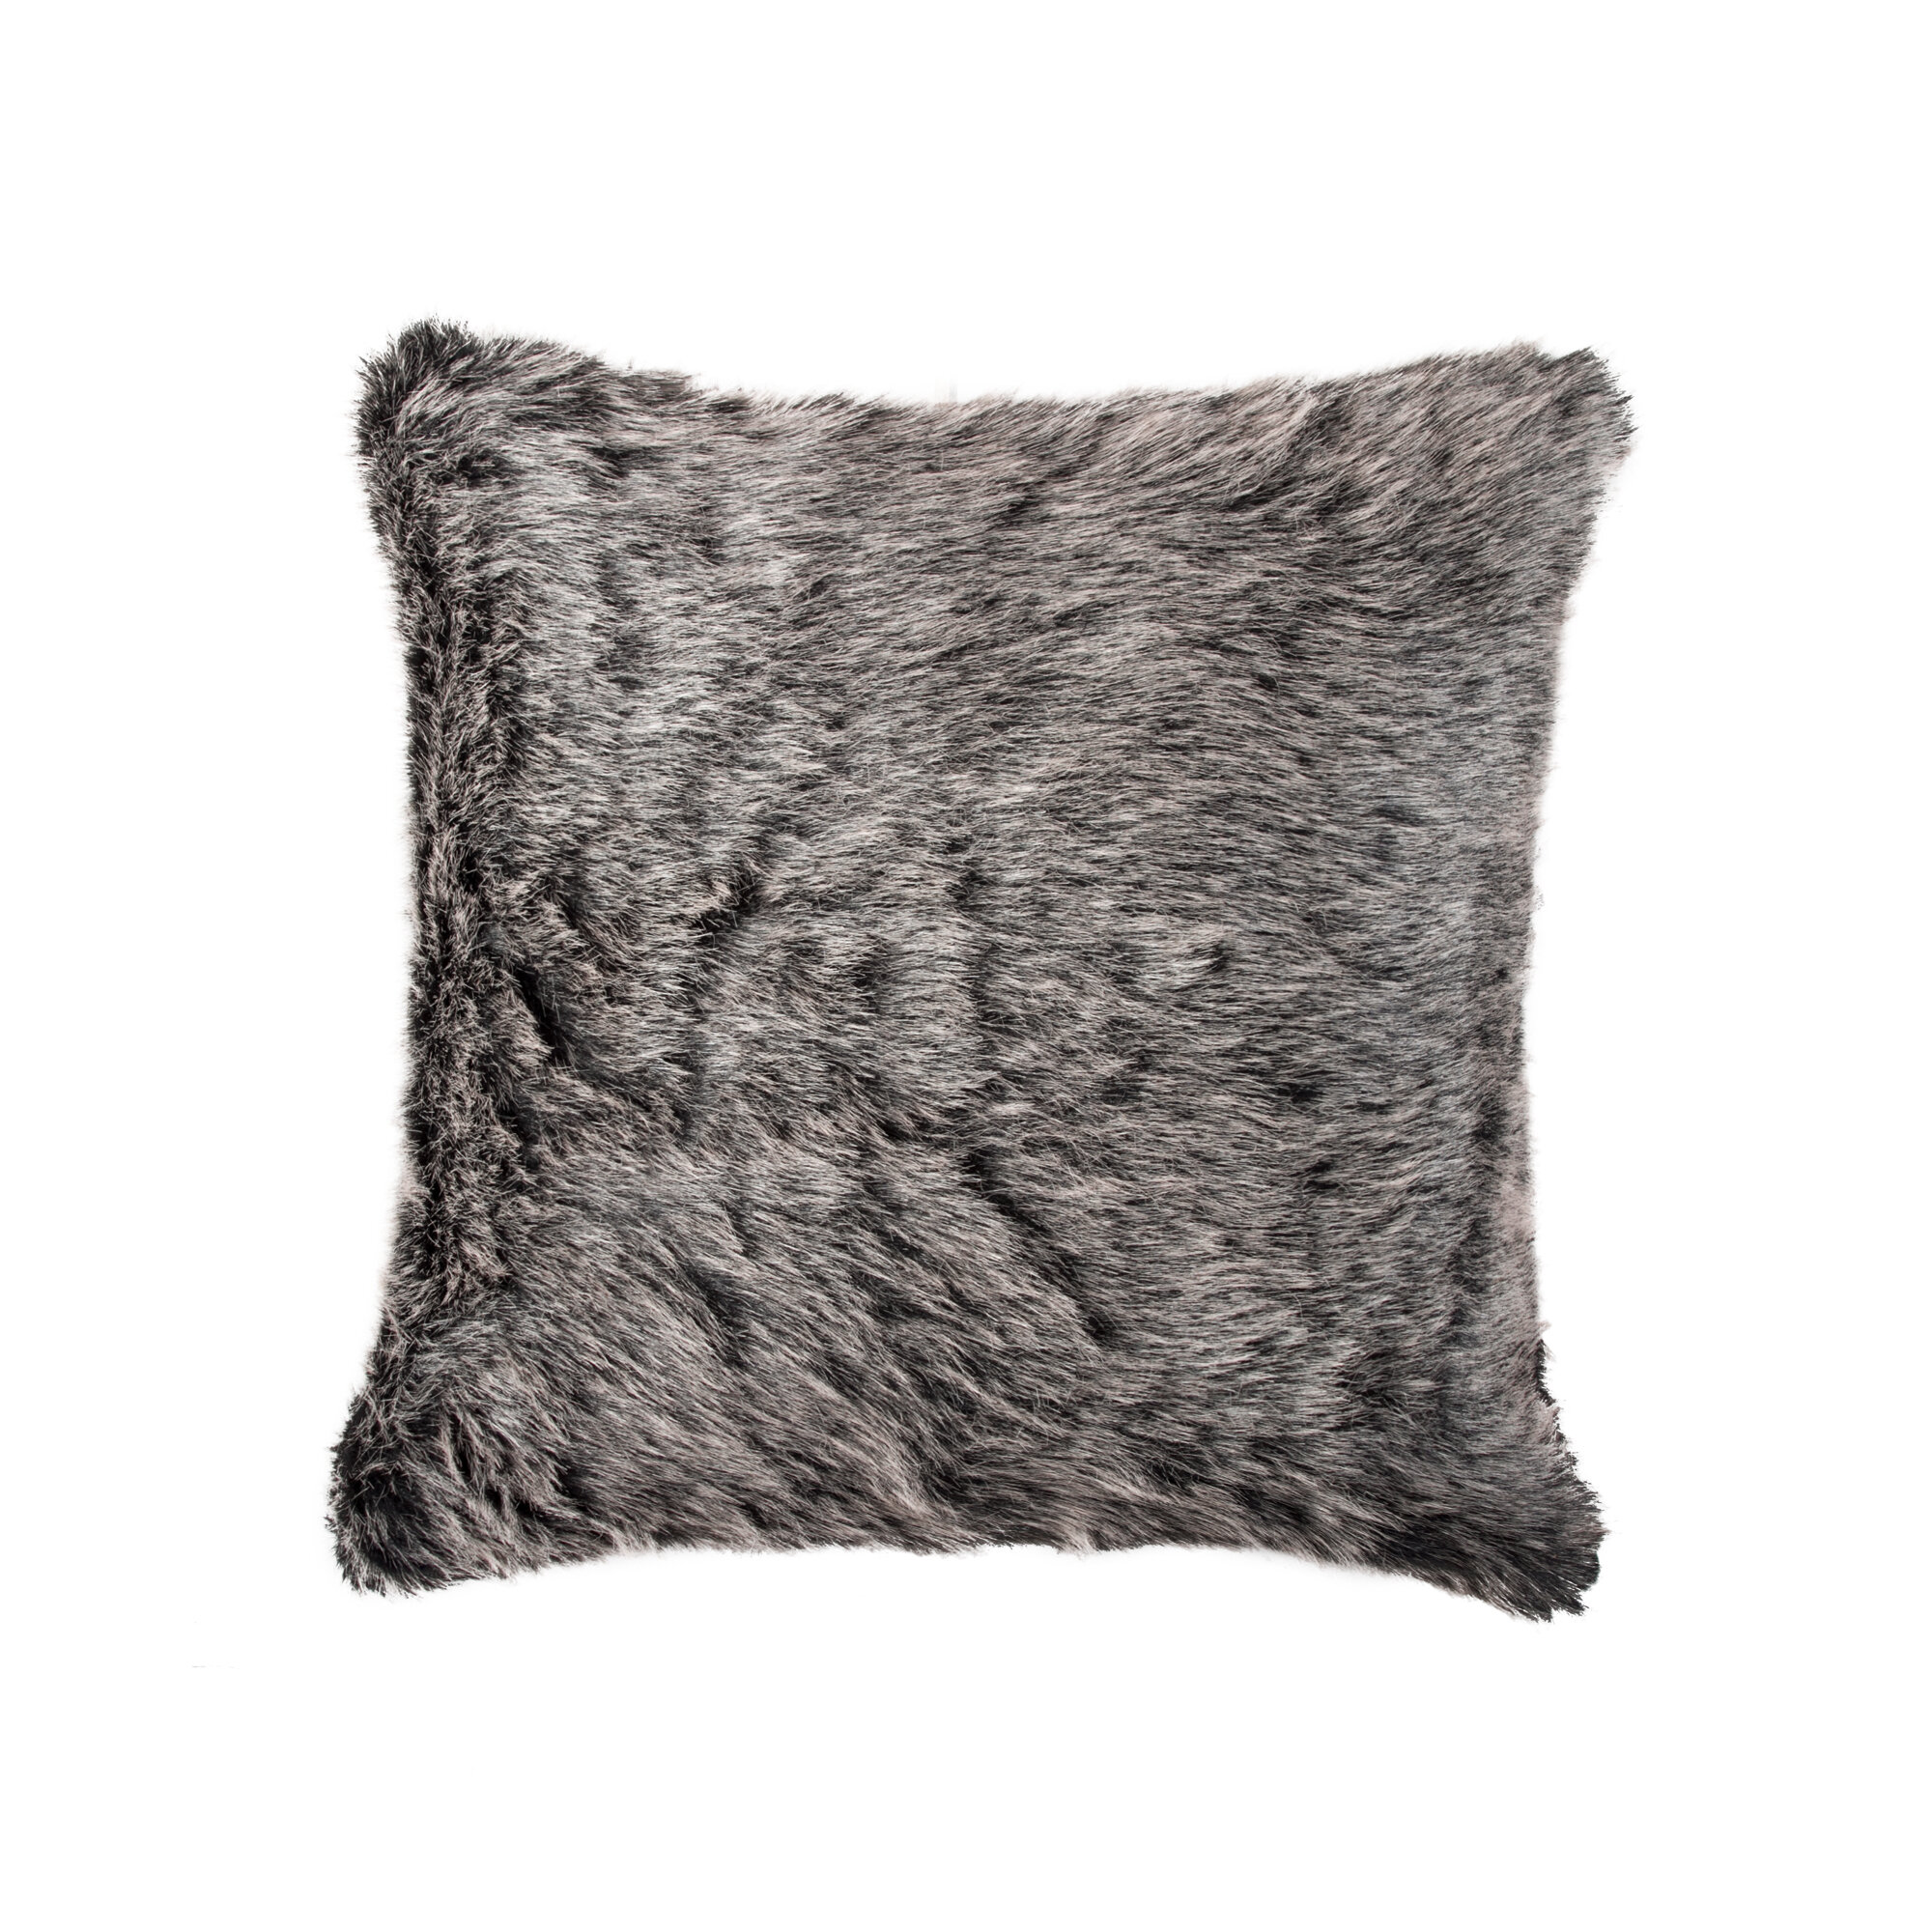 super ivory x fur throw cover plush calitime com pillow case bed sofa dp amazon couch soft kitchen solid inches home for faux